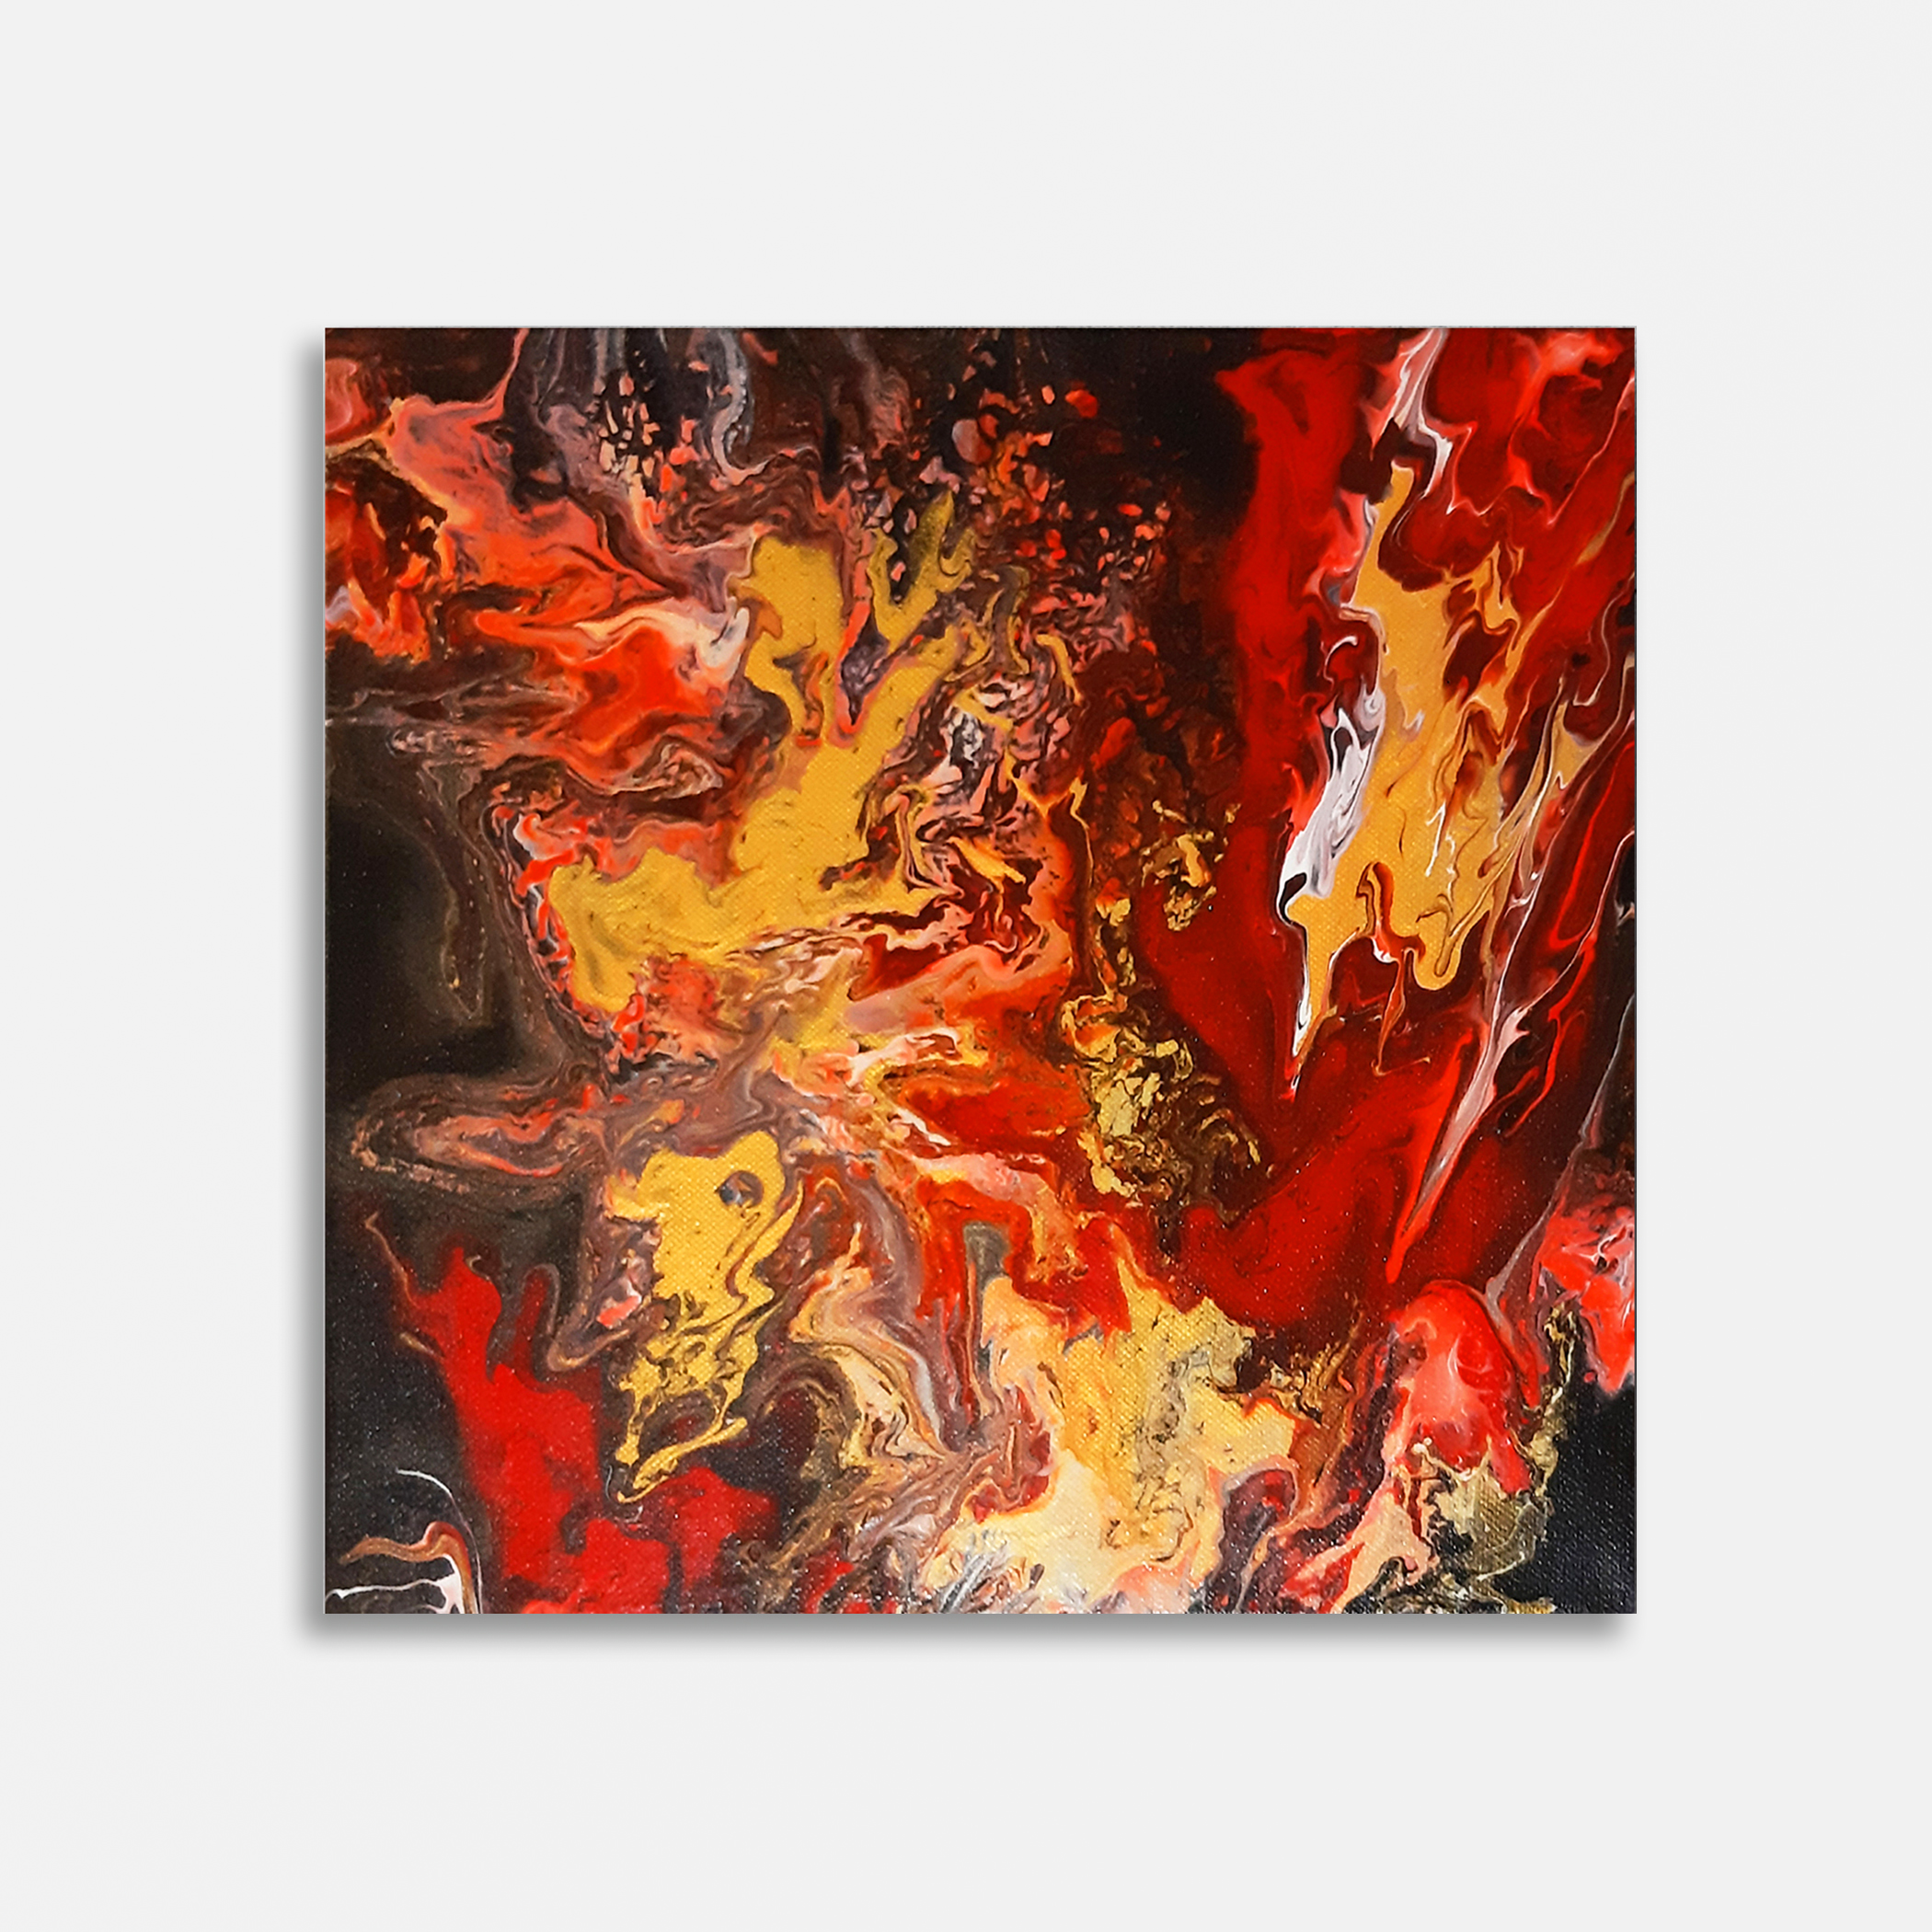 """Night fire"", acrilico su tela, 30x30 cm."